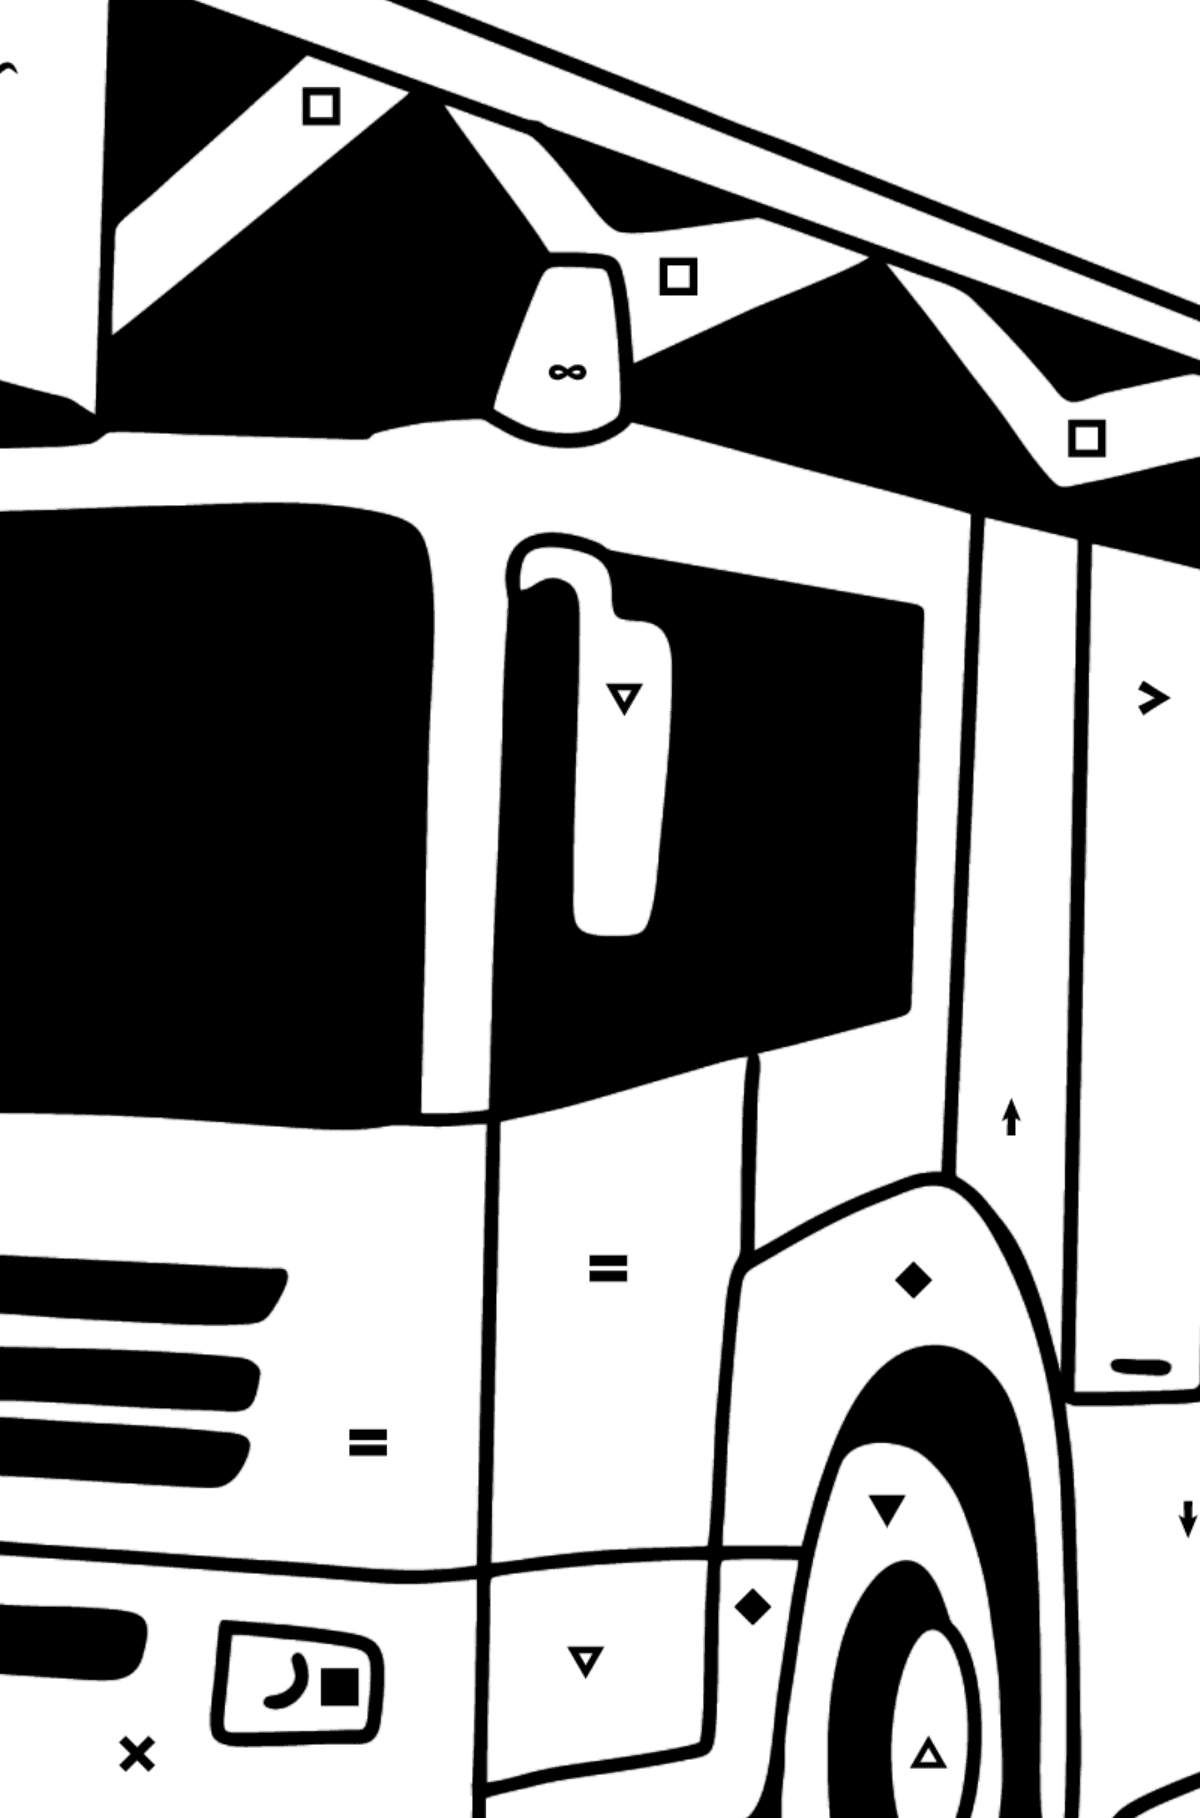 Fire Truck in Germany coloring page - Coloring by Symbols for Kids